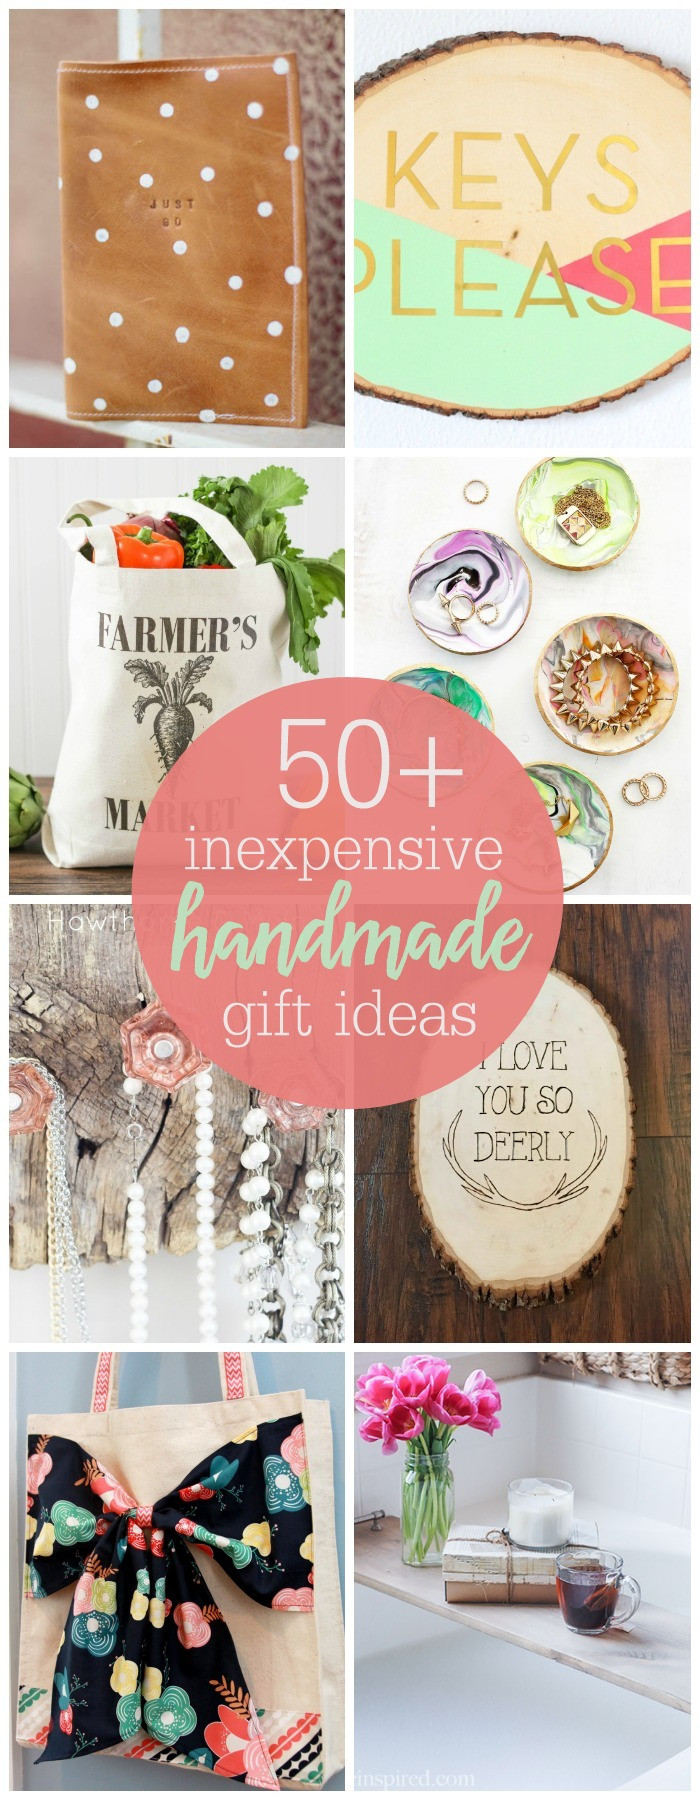 Best ideas about DIY Christmas Gifts For Best Friends . Save or Pin Inexpensive Handmade Gift Ideas Now.